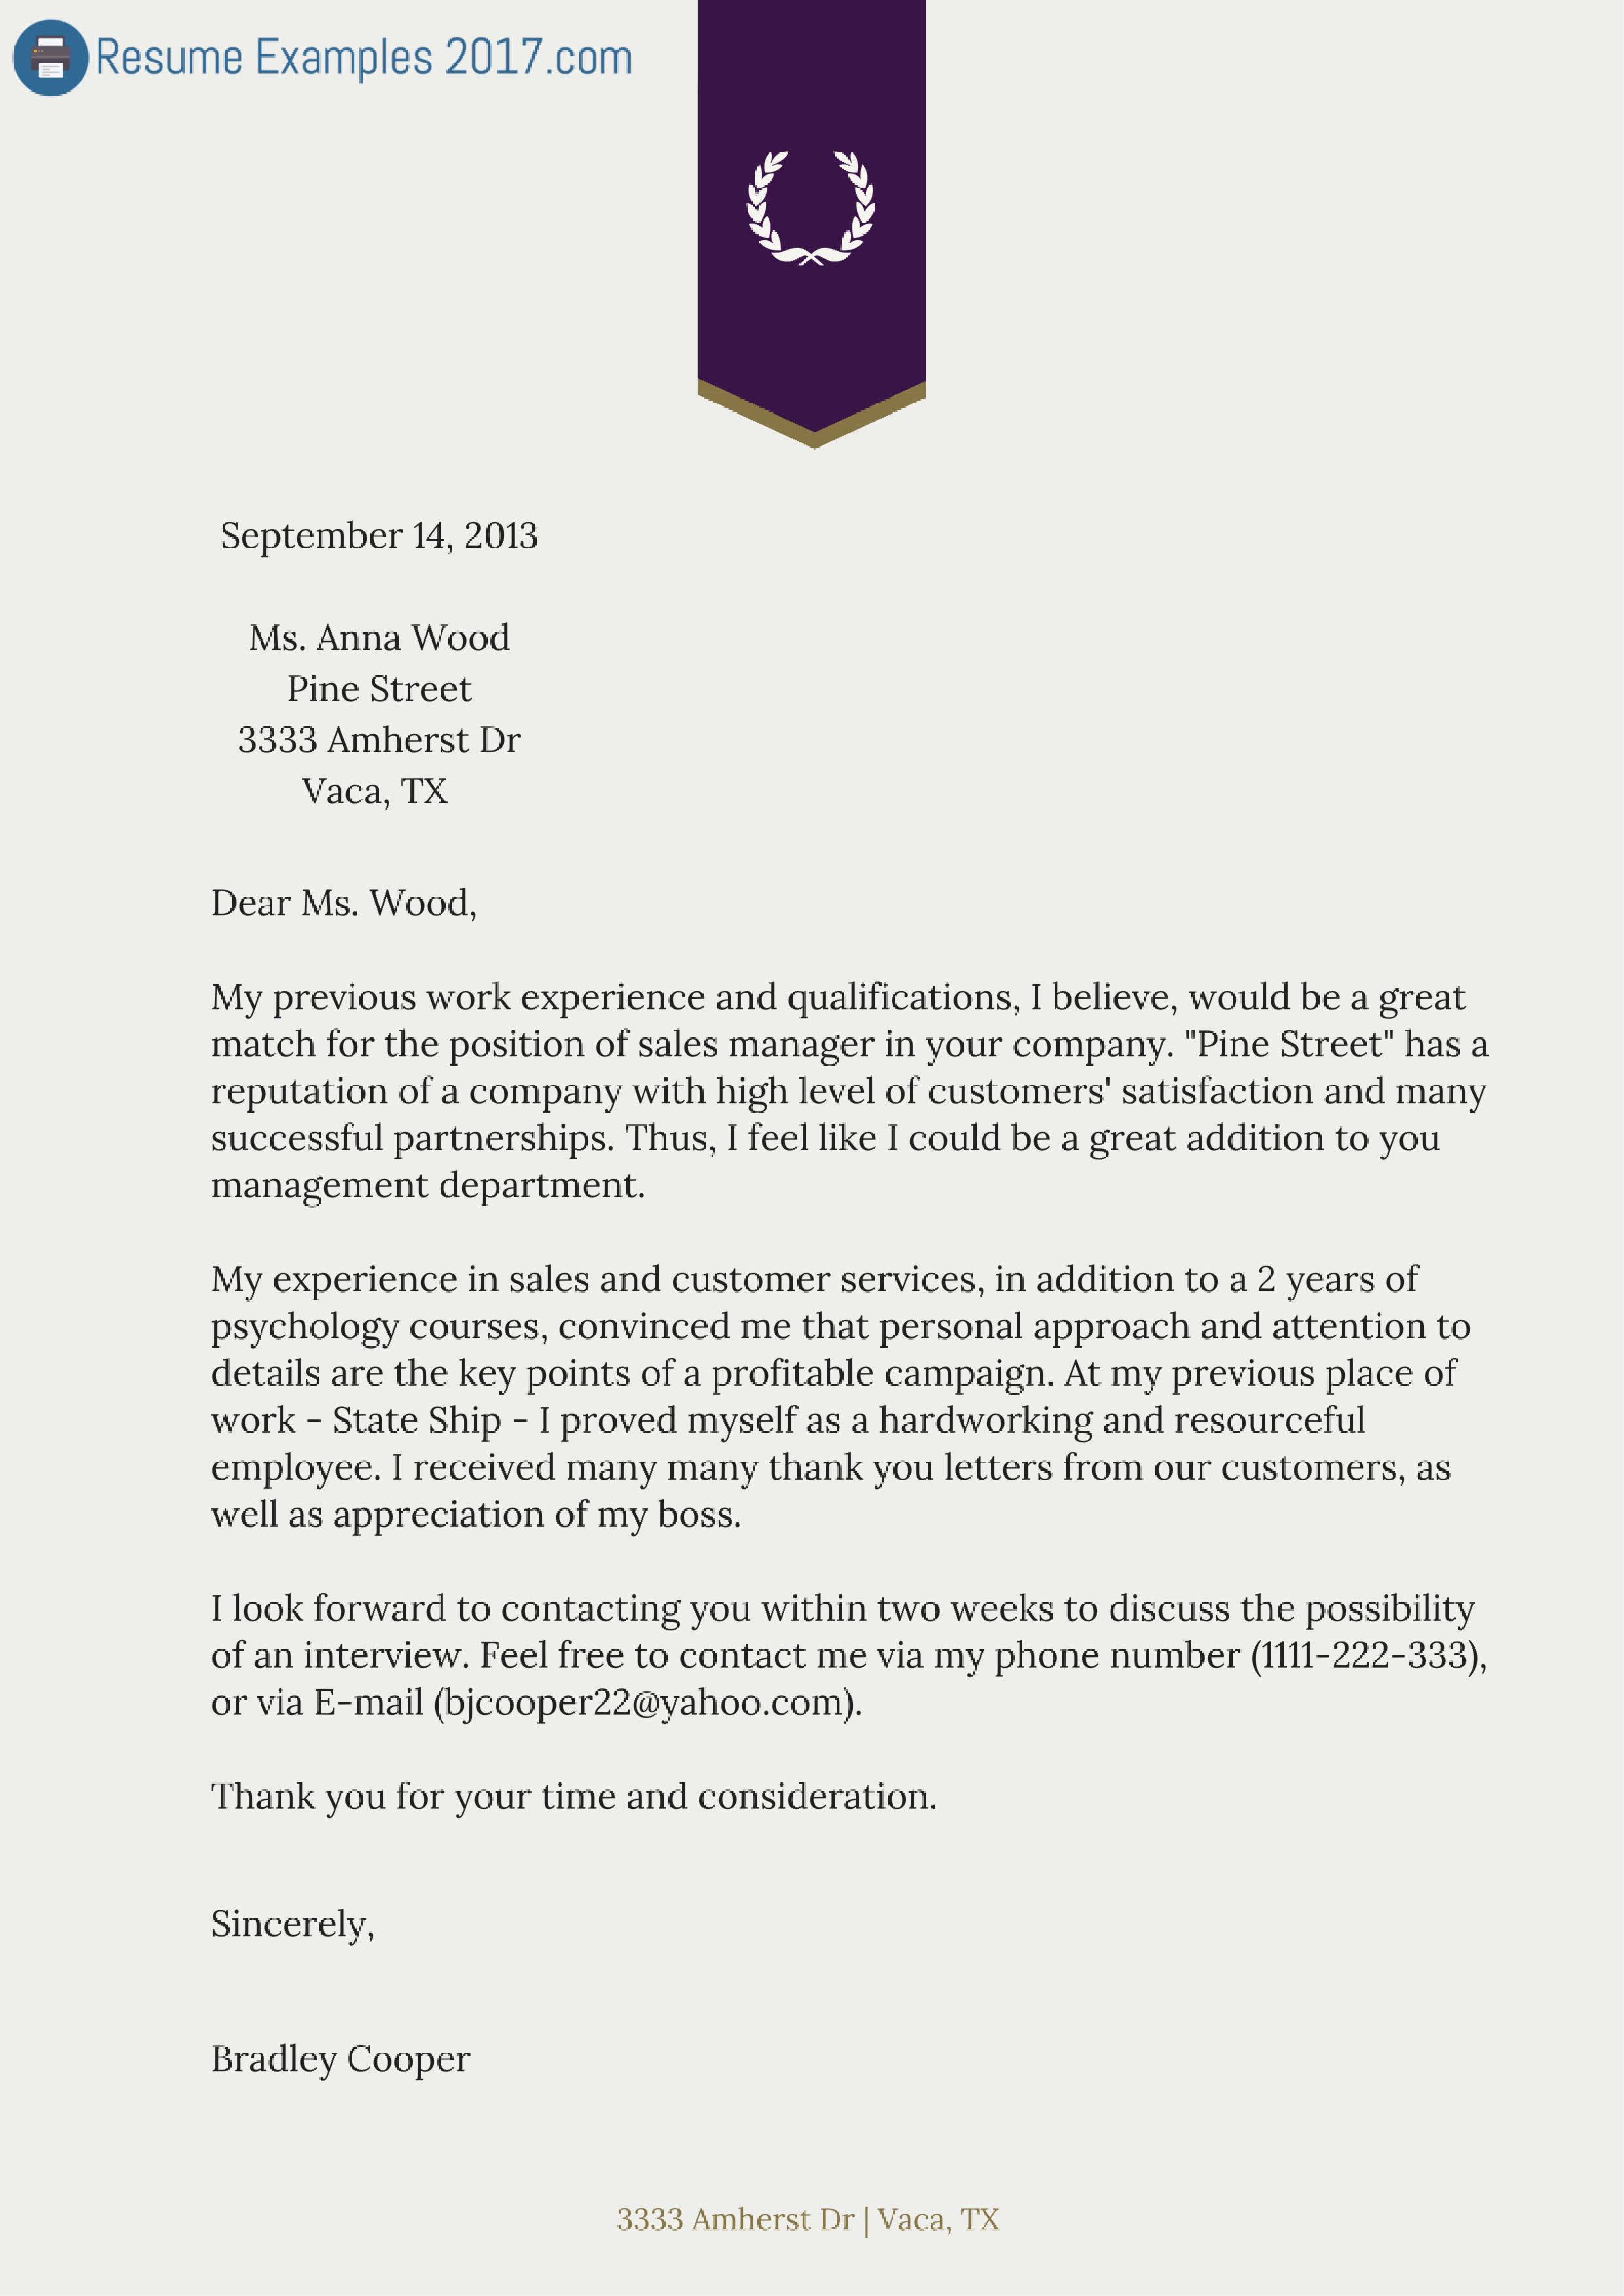 Cover Letter Templates for Resumes Luxury Download Cover Letter Samples